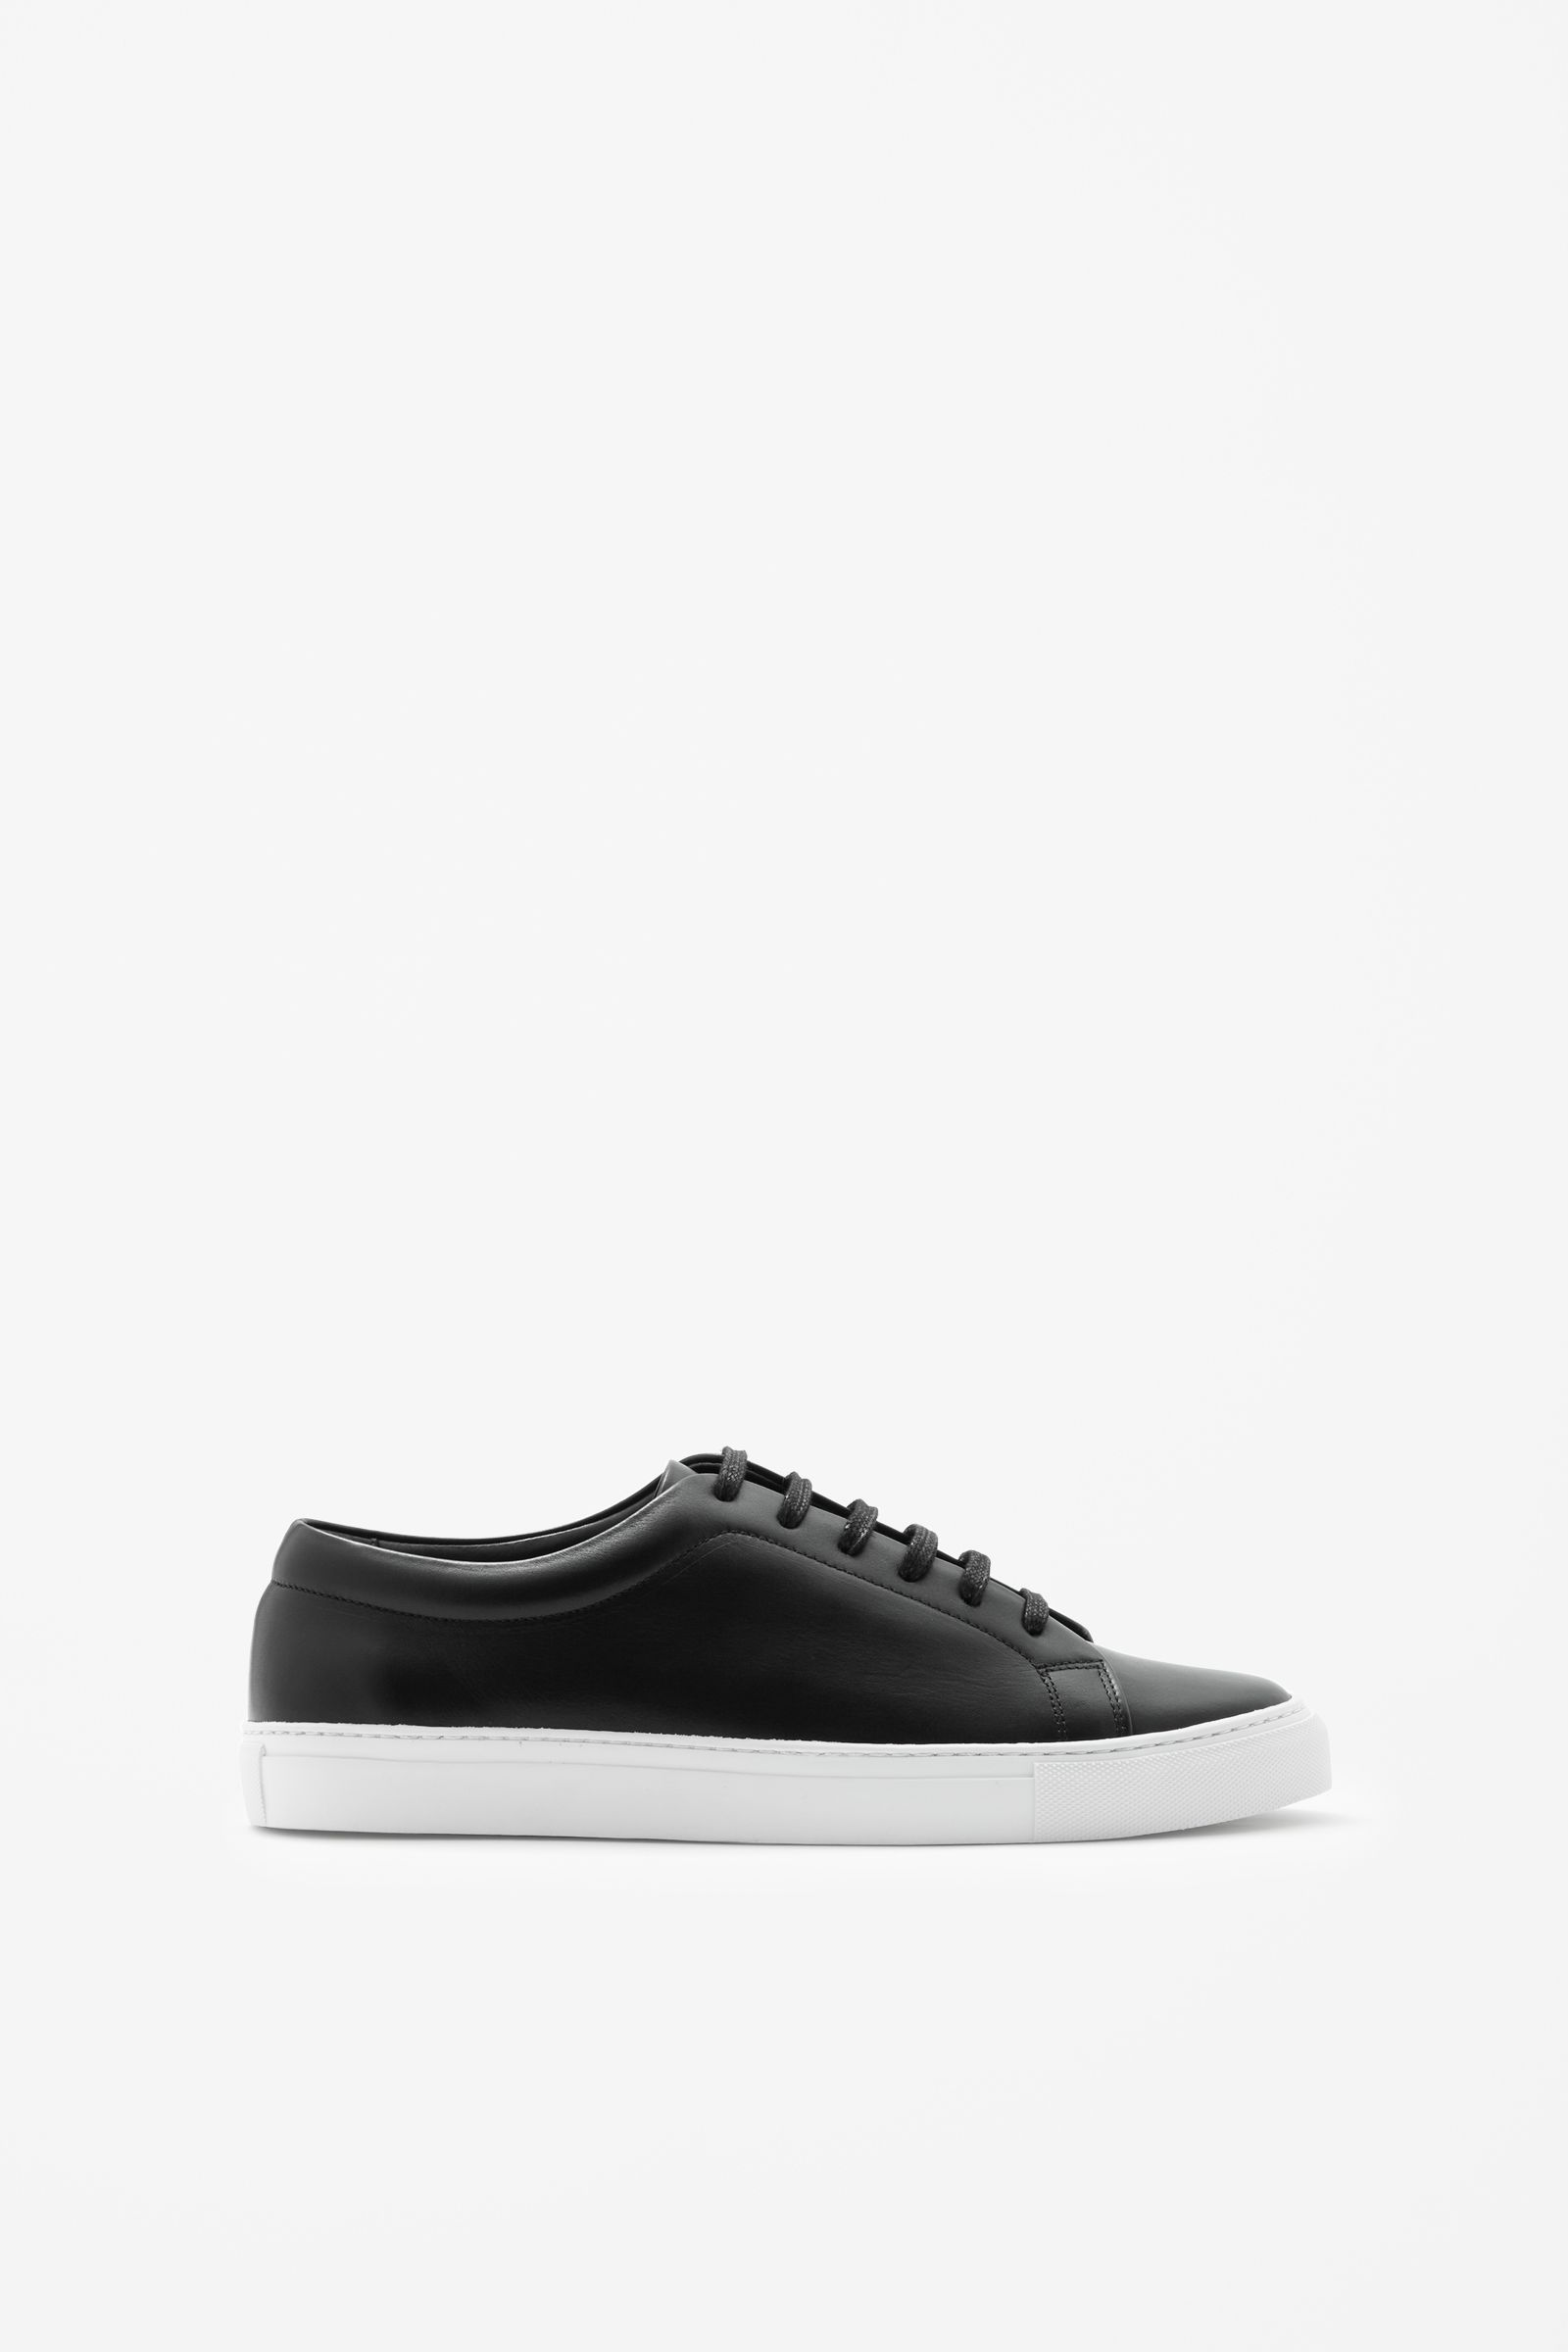 COS Contrast sole leather sneakers £79.jpg